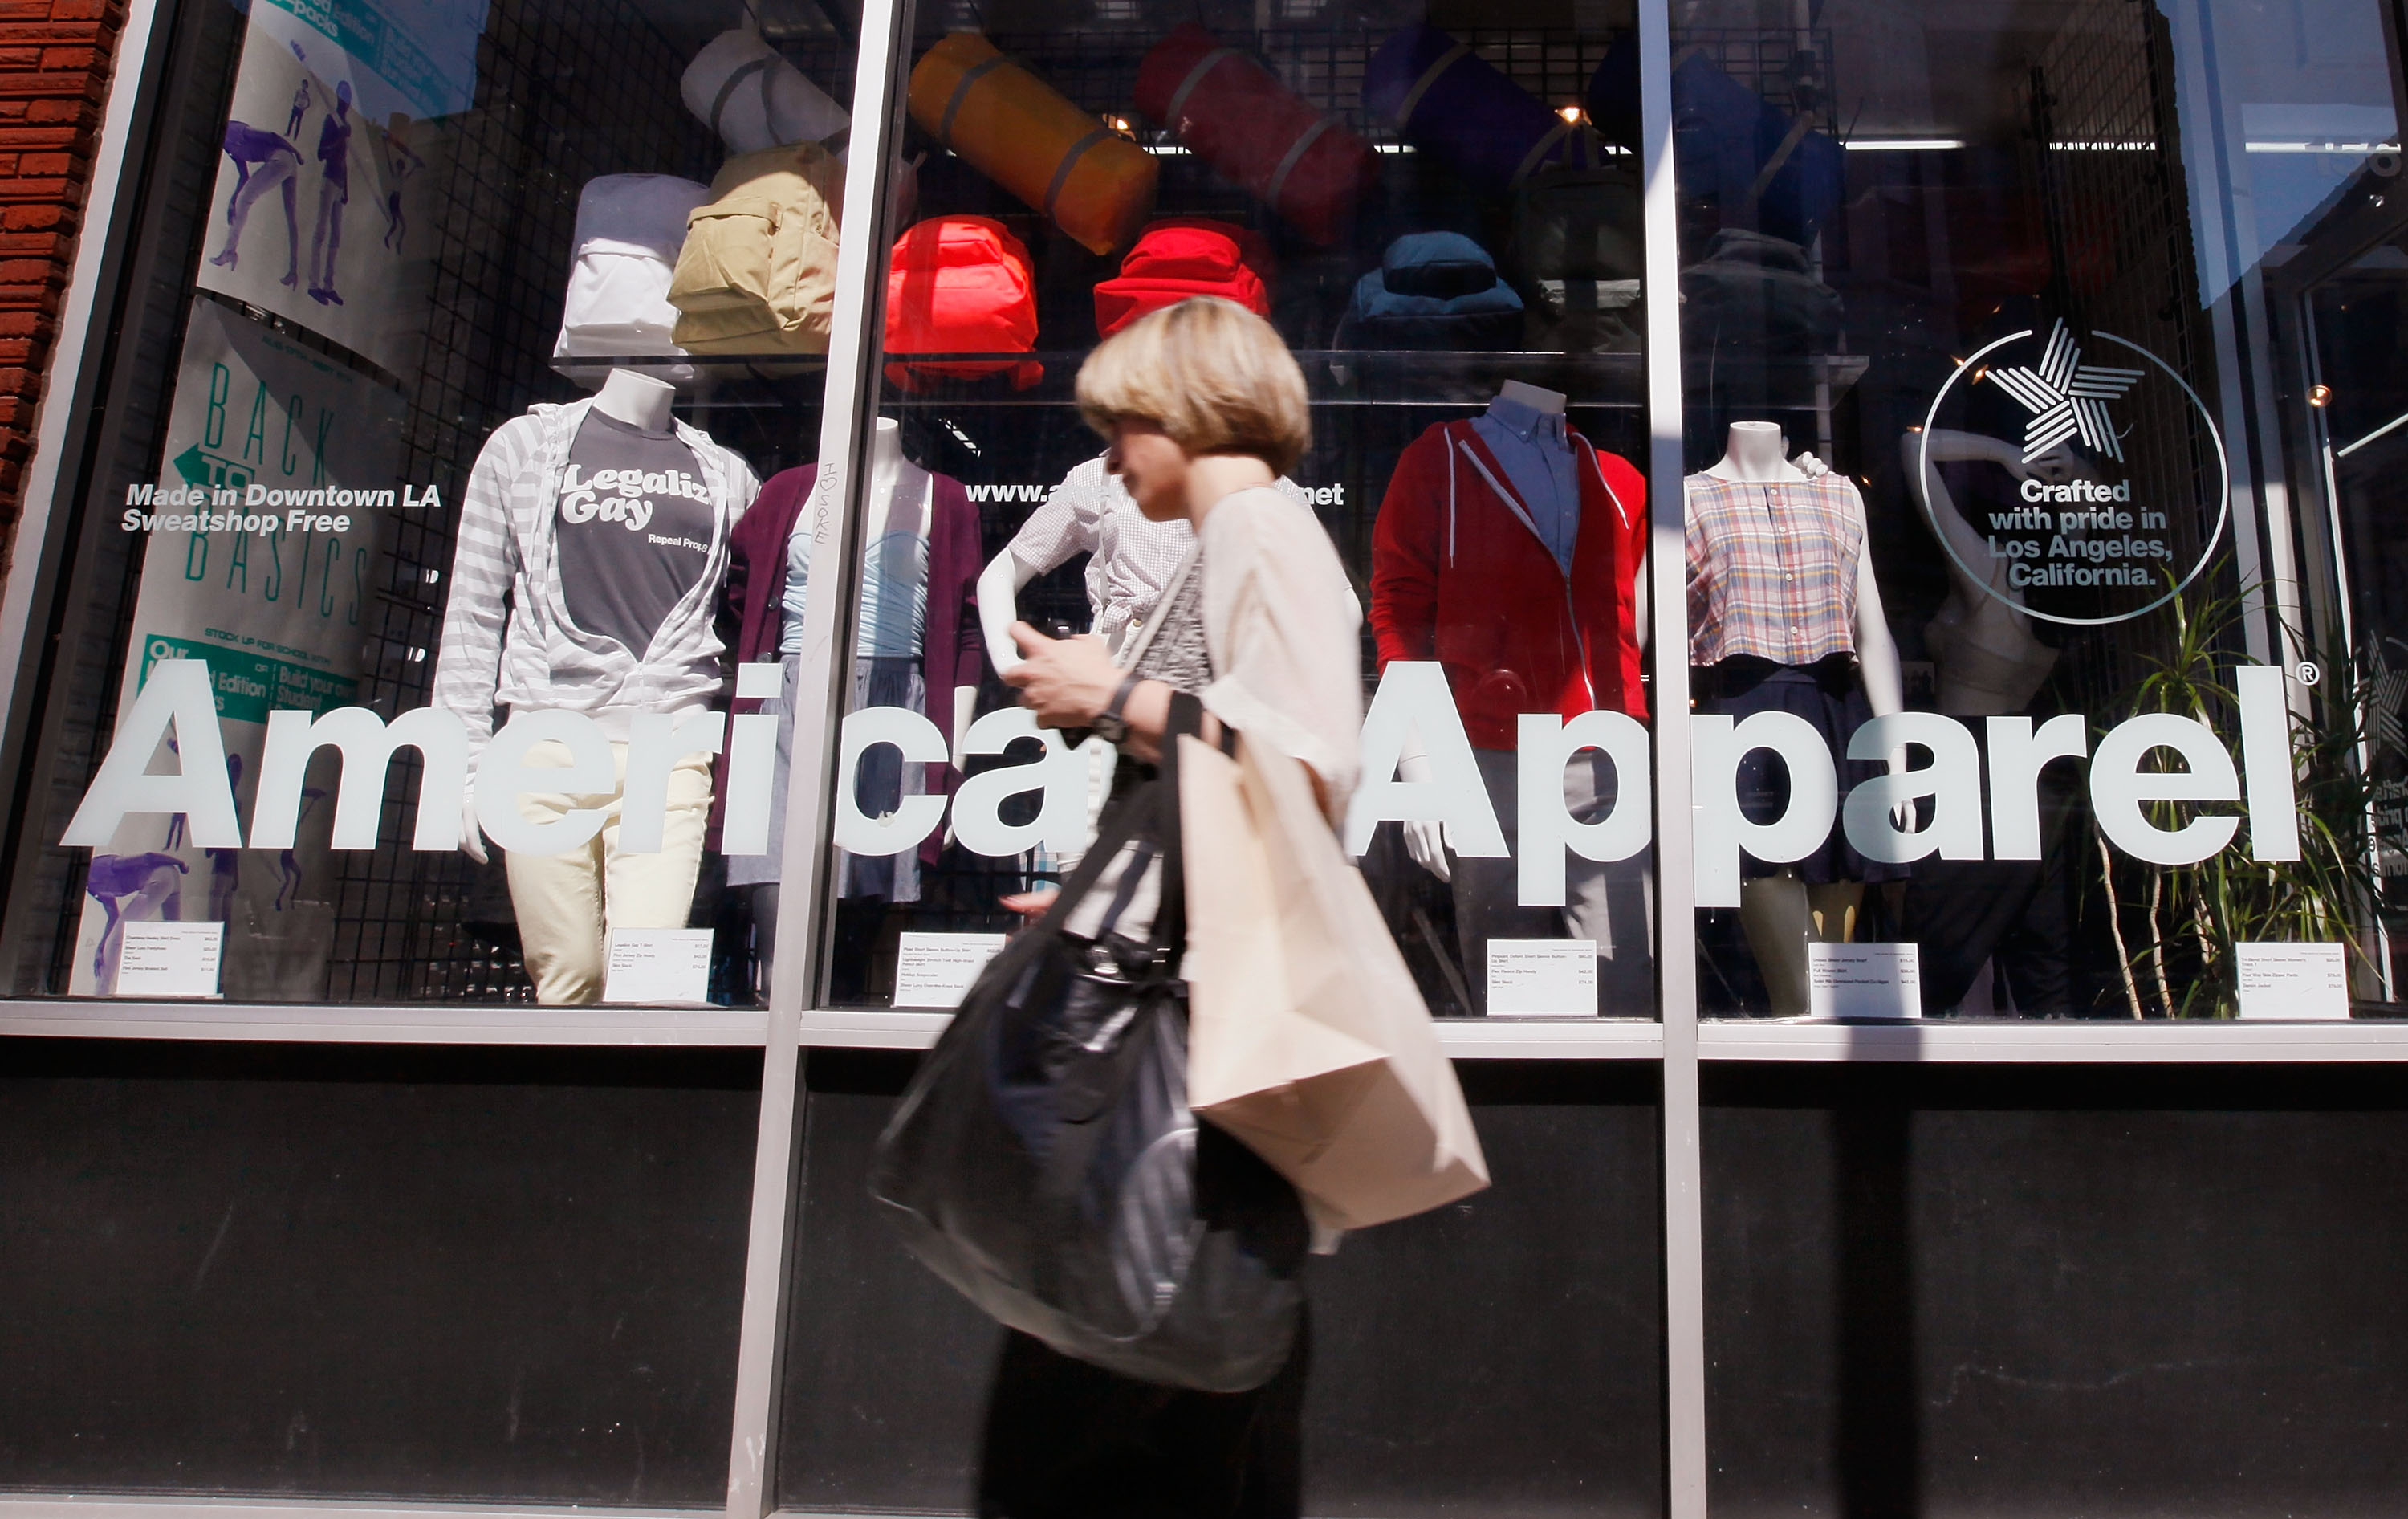 A pedestrian passes by an American Apparel store on Sept. 4, 2009 in Chicago, Illinois.